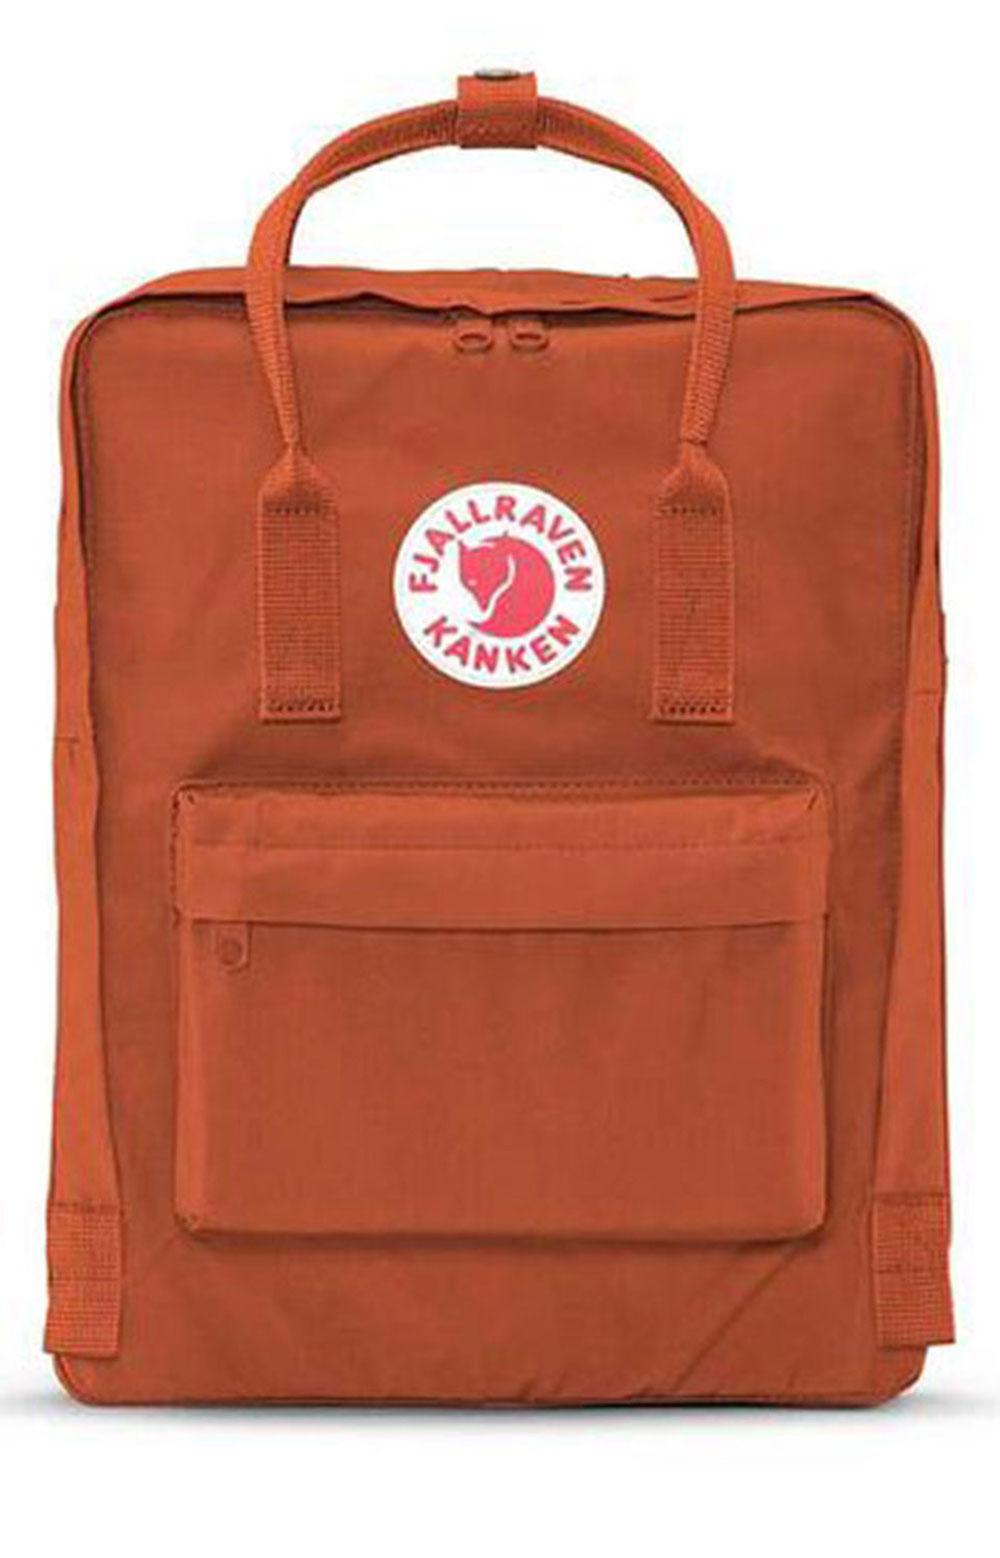 Kanken Backpack - Brick